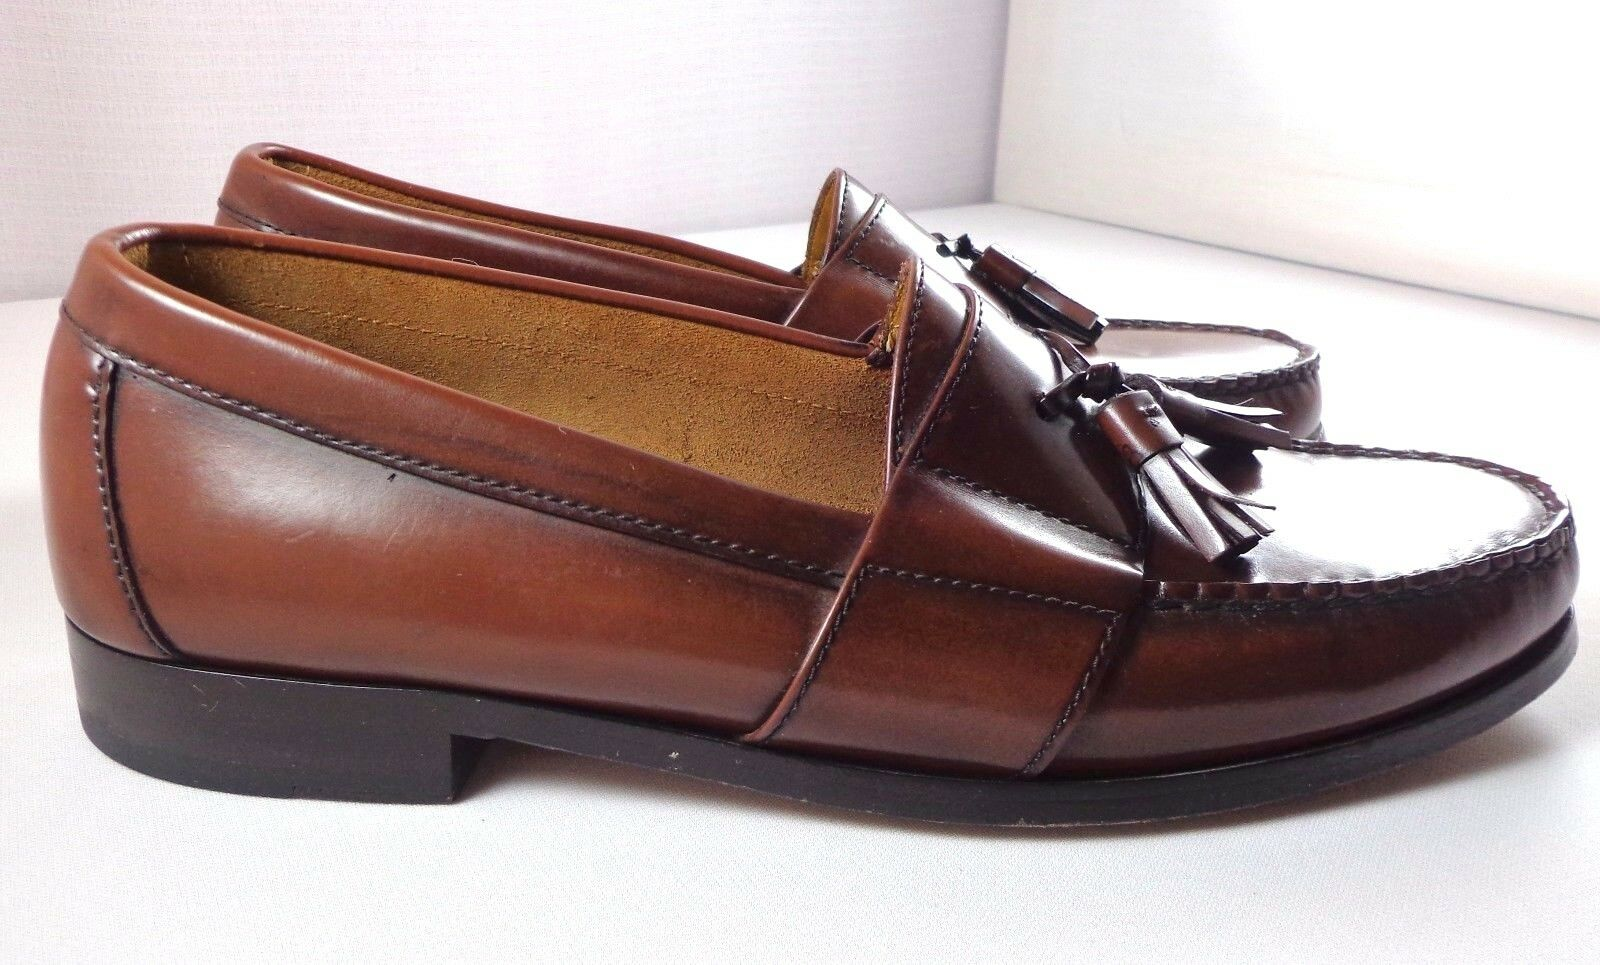 Cole Haan Dress Loafers Mens Brown Leather Tassel Slip On shoes size 8.5 M